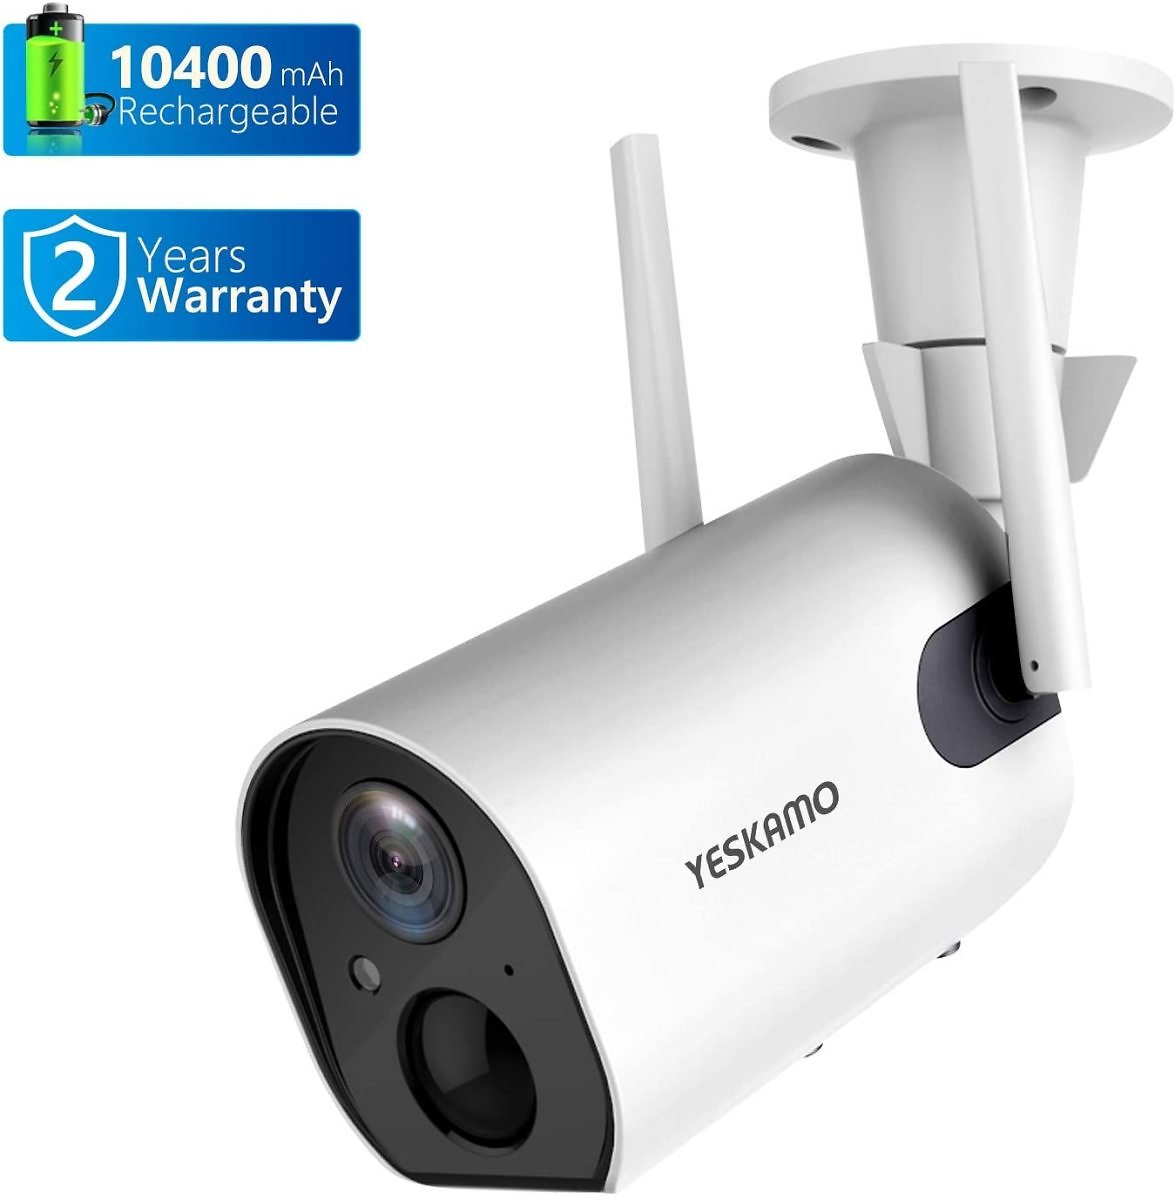 Wireless Outdoor Security Camera, 10400mAh Rechargeable Battery Powered WiFi Camera YESKAMO 1080P Surveillance Camera for Home S